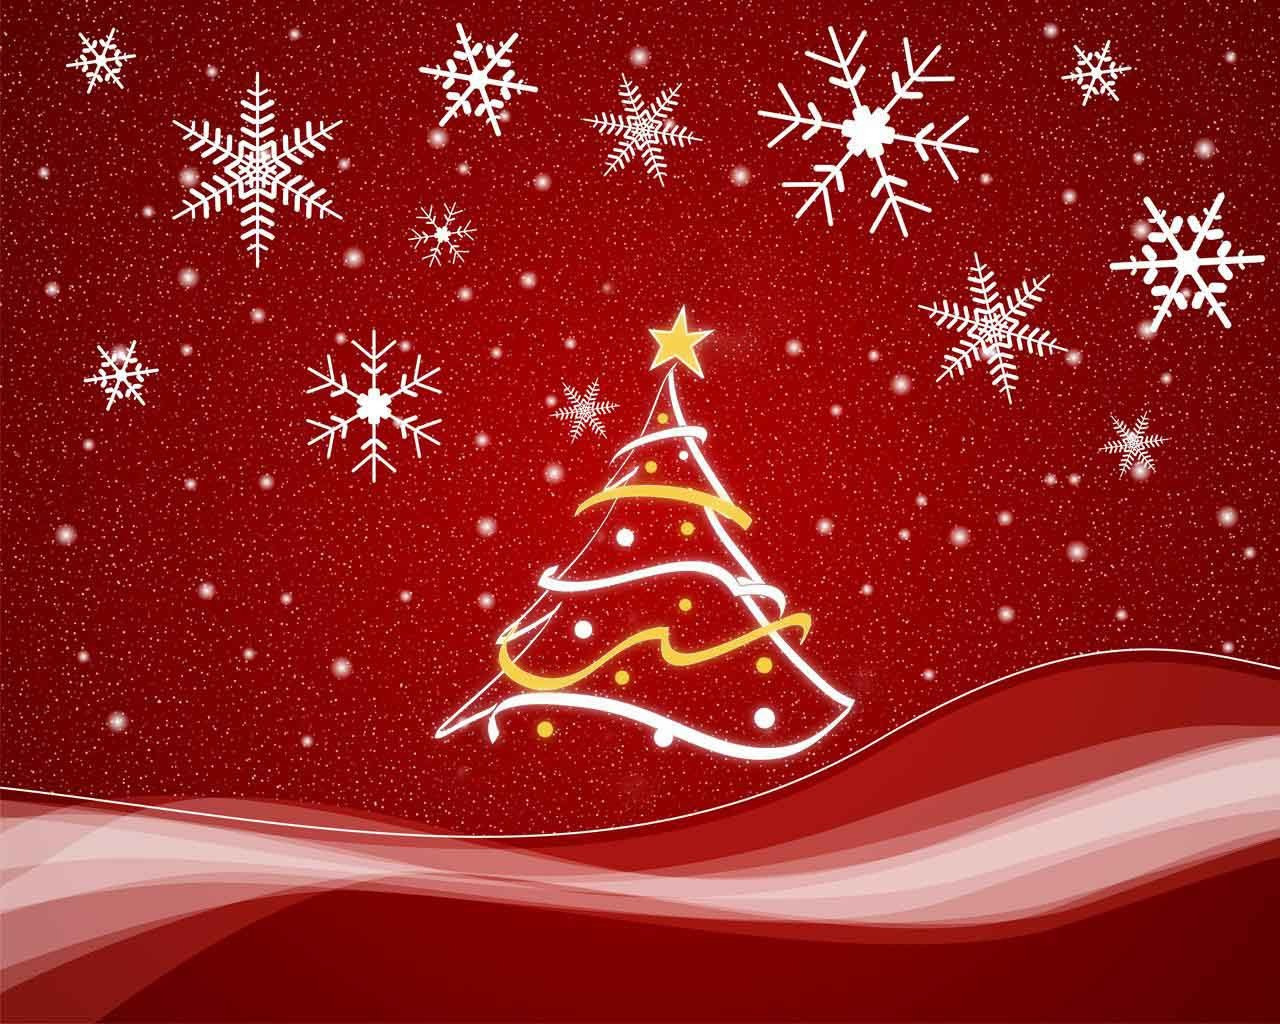 Christmas Powerpoint Slide Show Free Christmas Powerpoint Backgrounds – Red Xmas